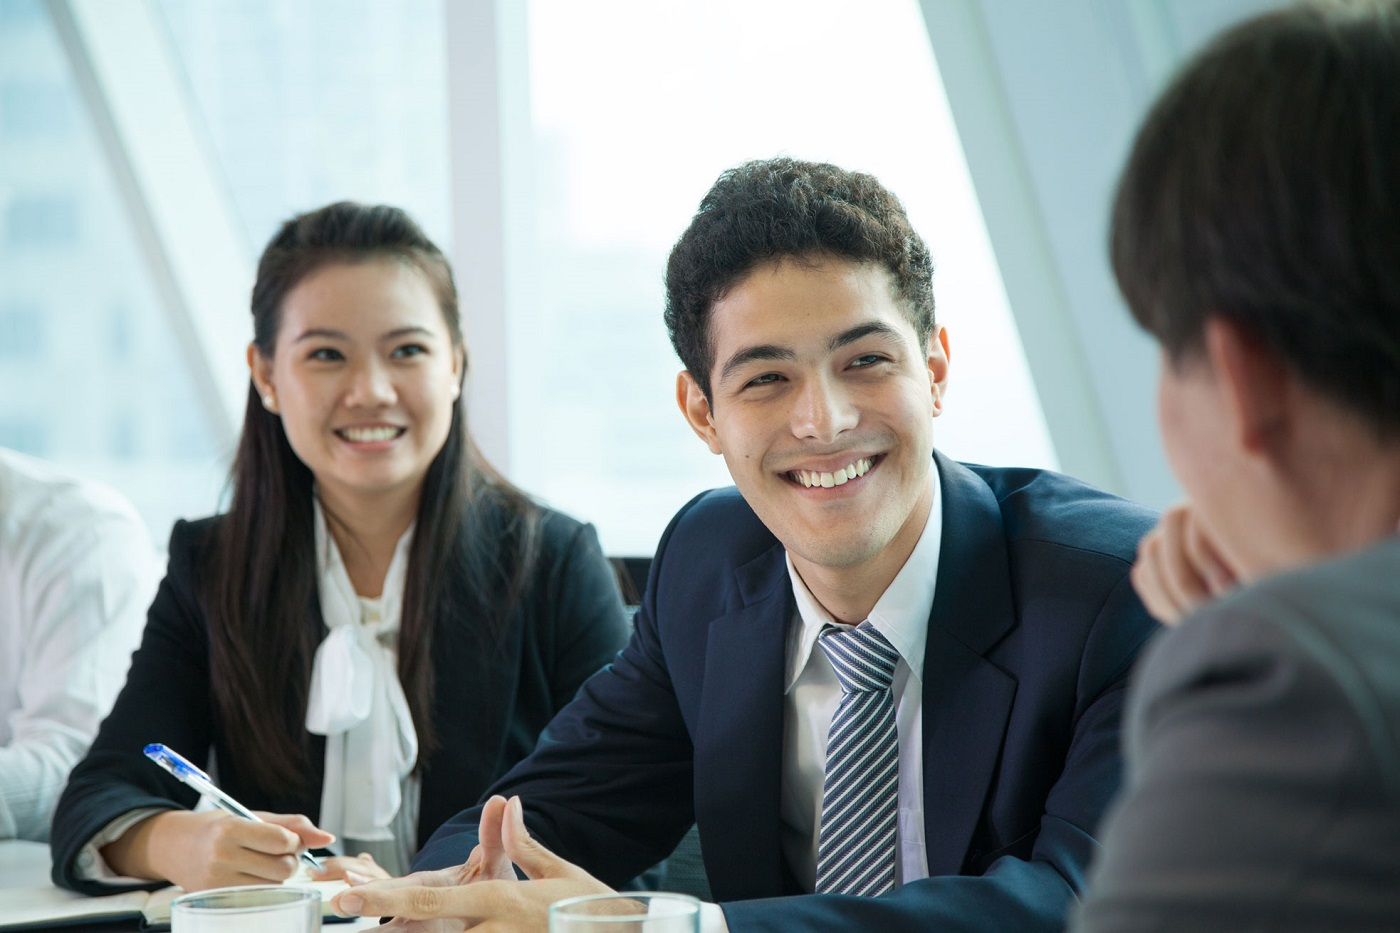 finance-language-solutions-business-meeting-multi-cultural-meeting-smiling-office_1400x933